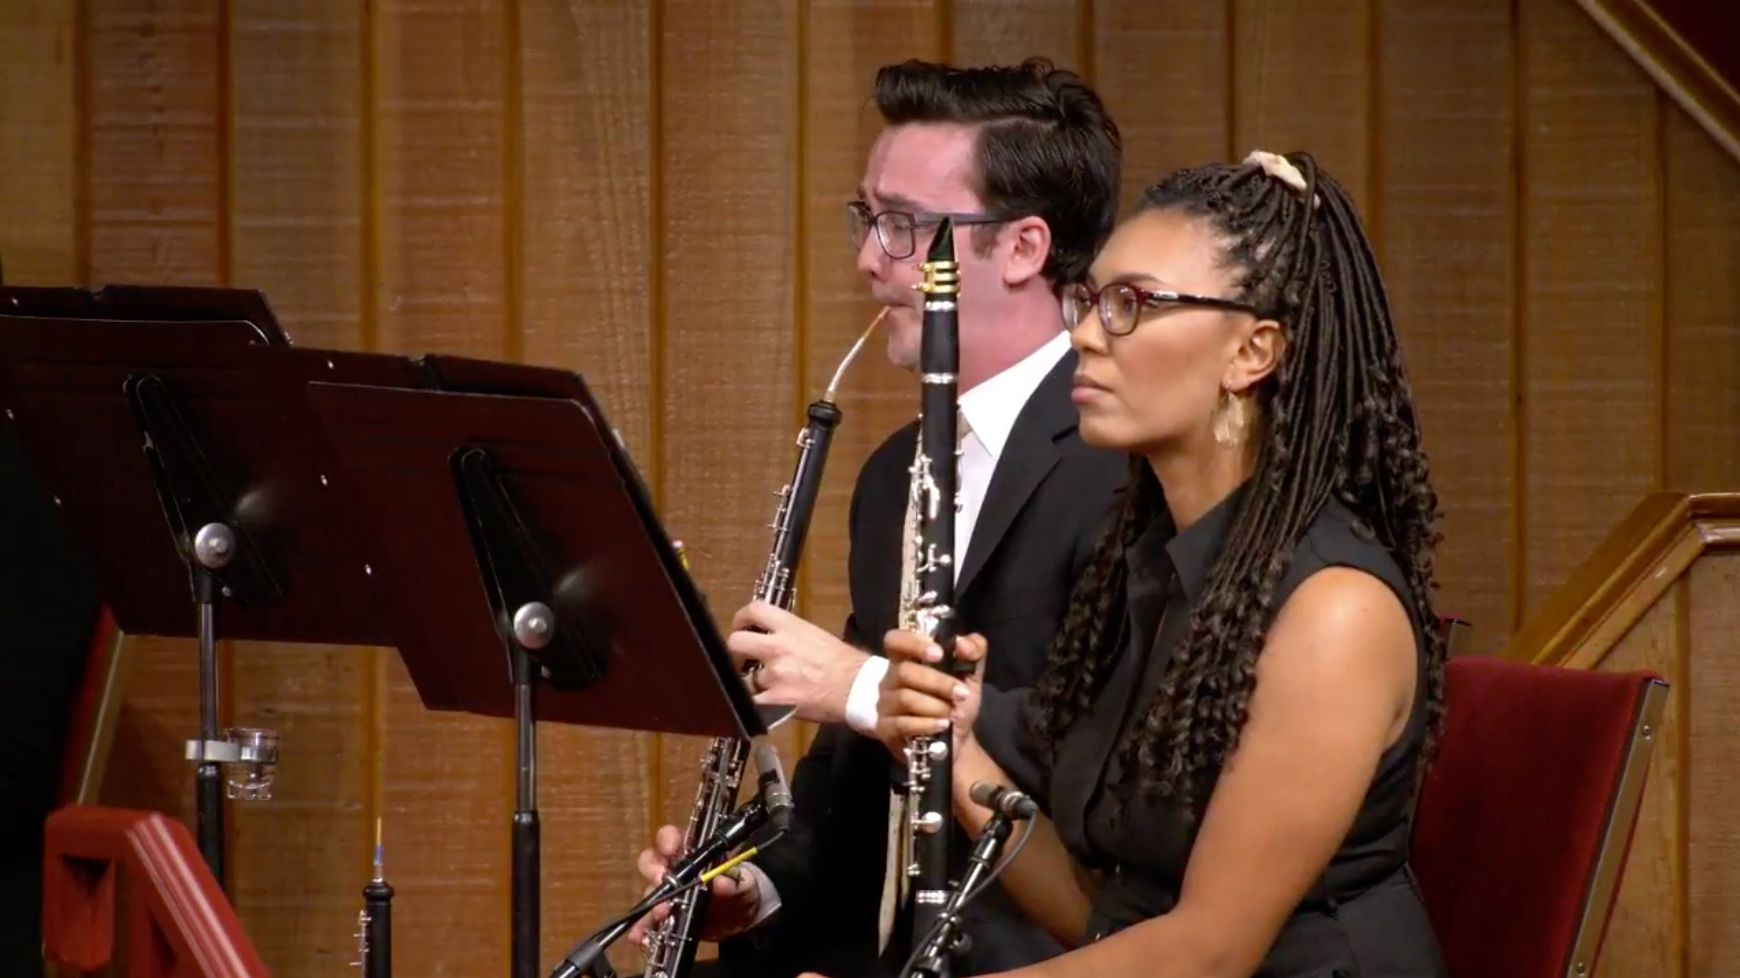 Musicians play instruments at an Aug. 16 worship service at Grace Community Church.